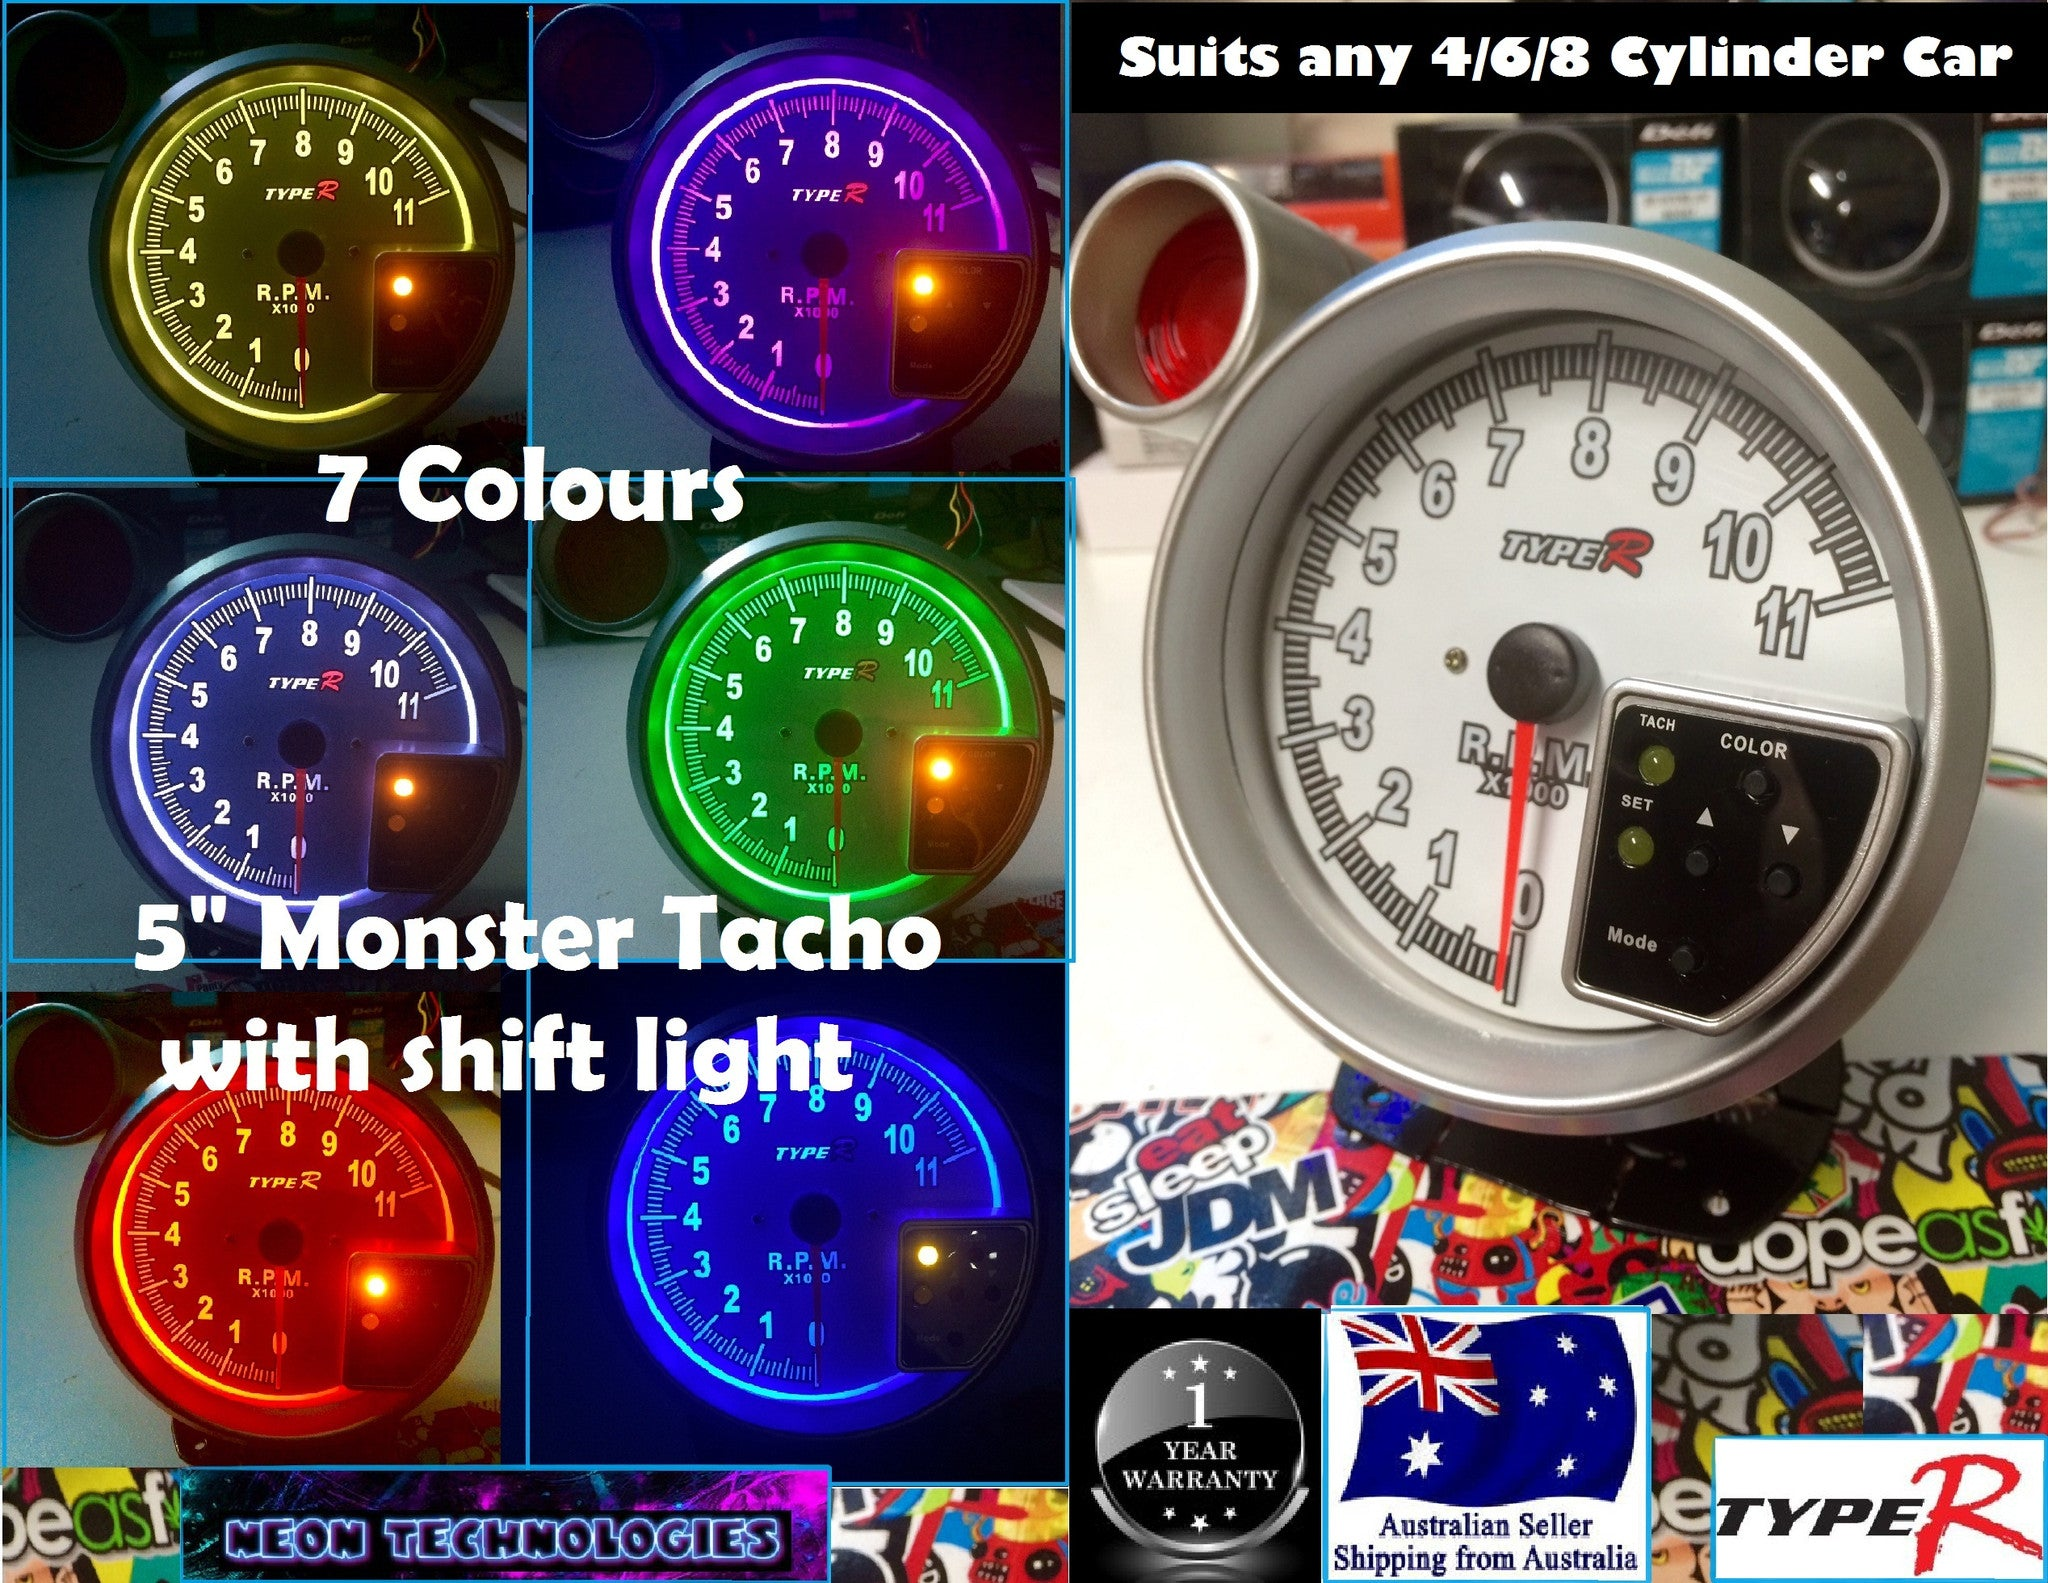 Monster tacho shift light 5 monster tacho shift light 7 colours sciox Choice Image